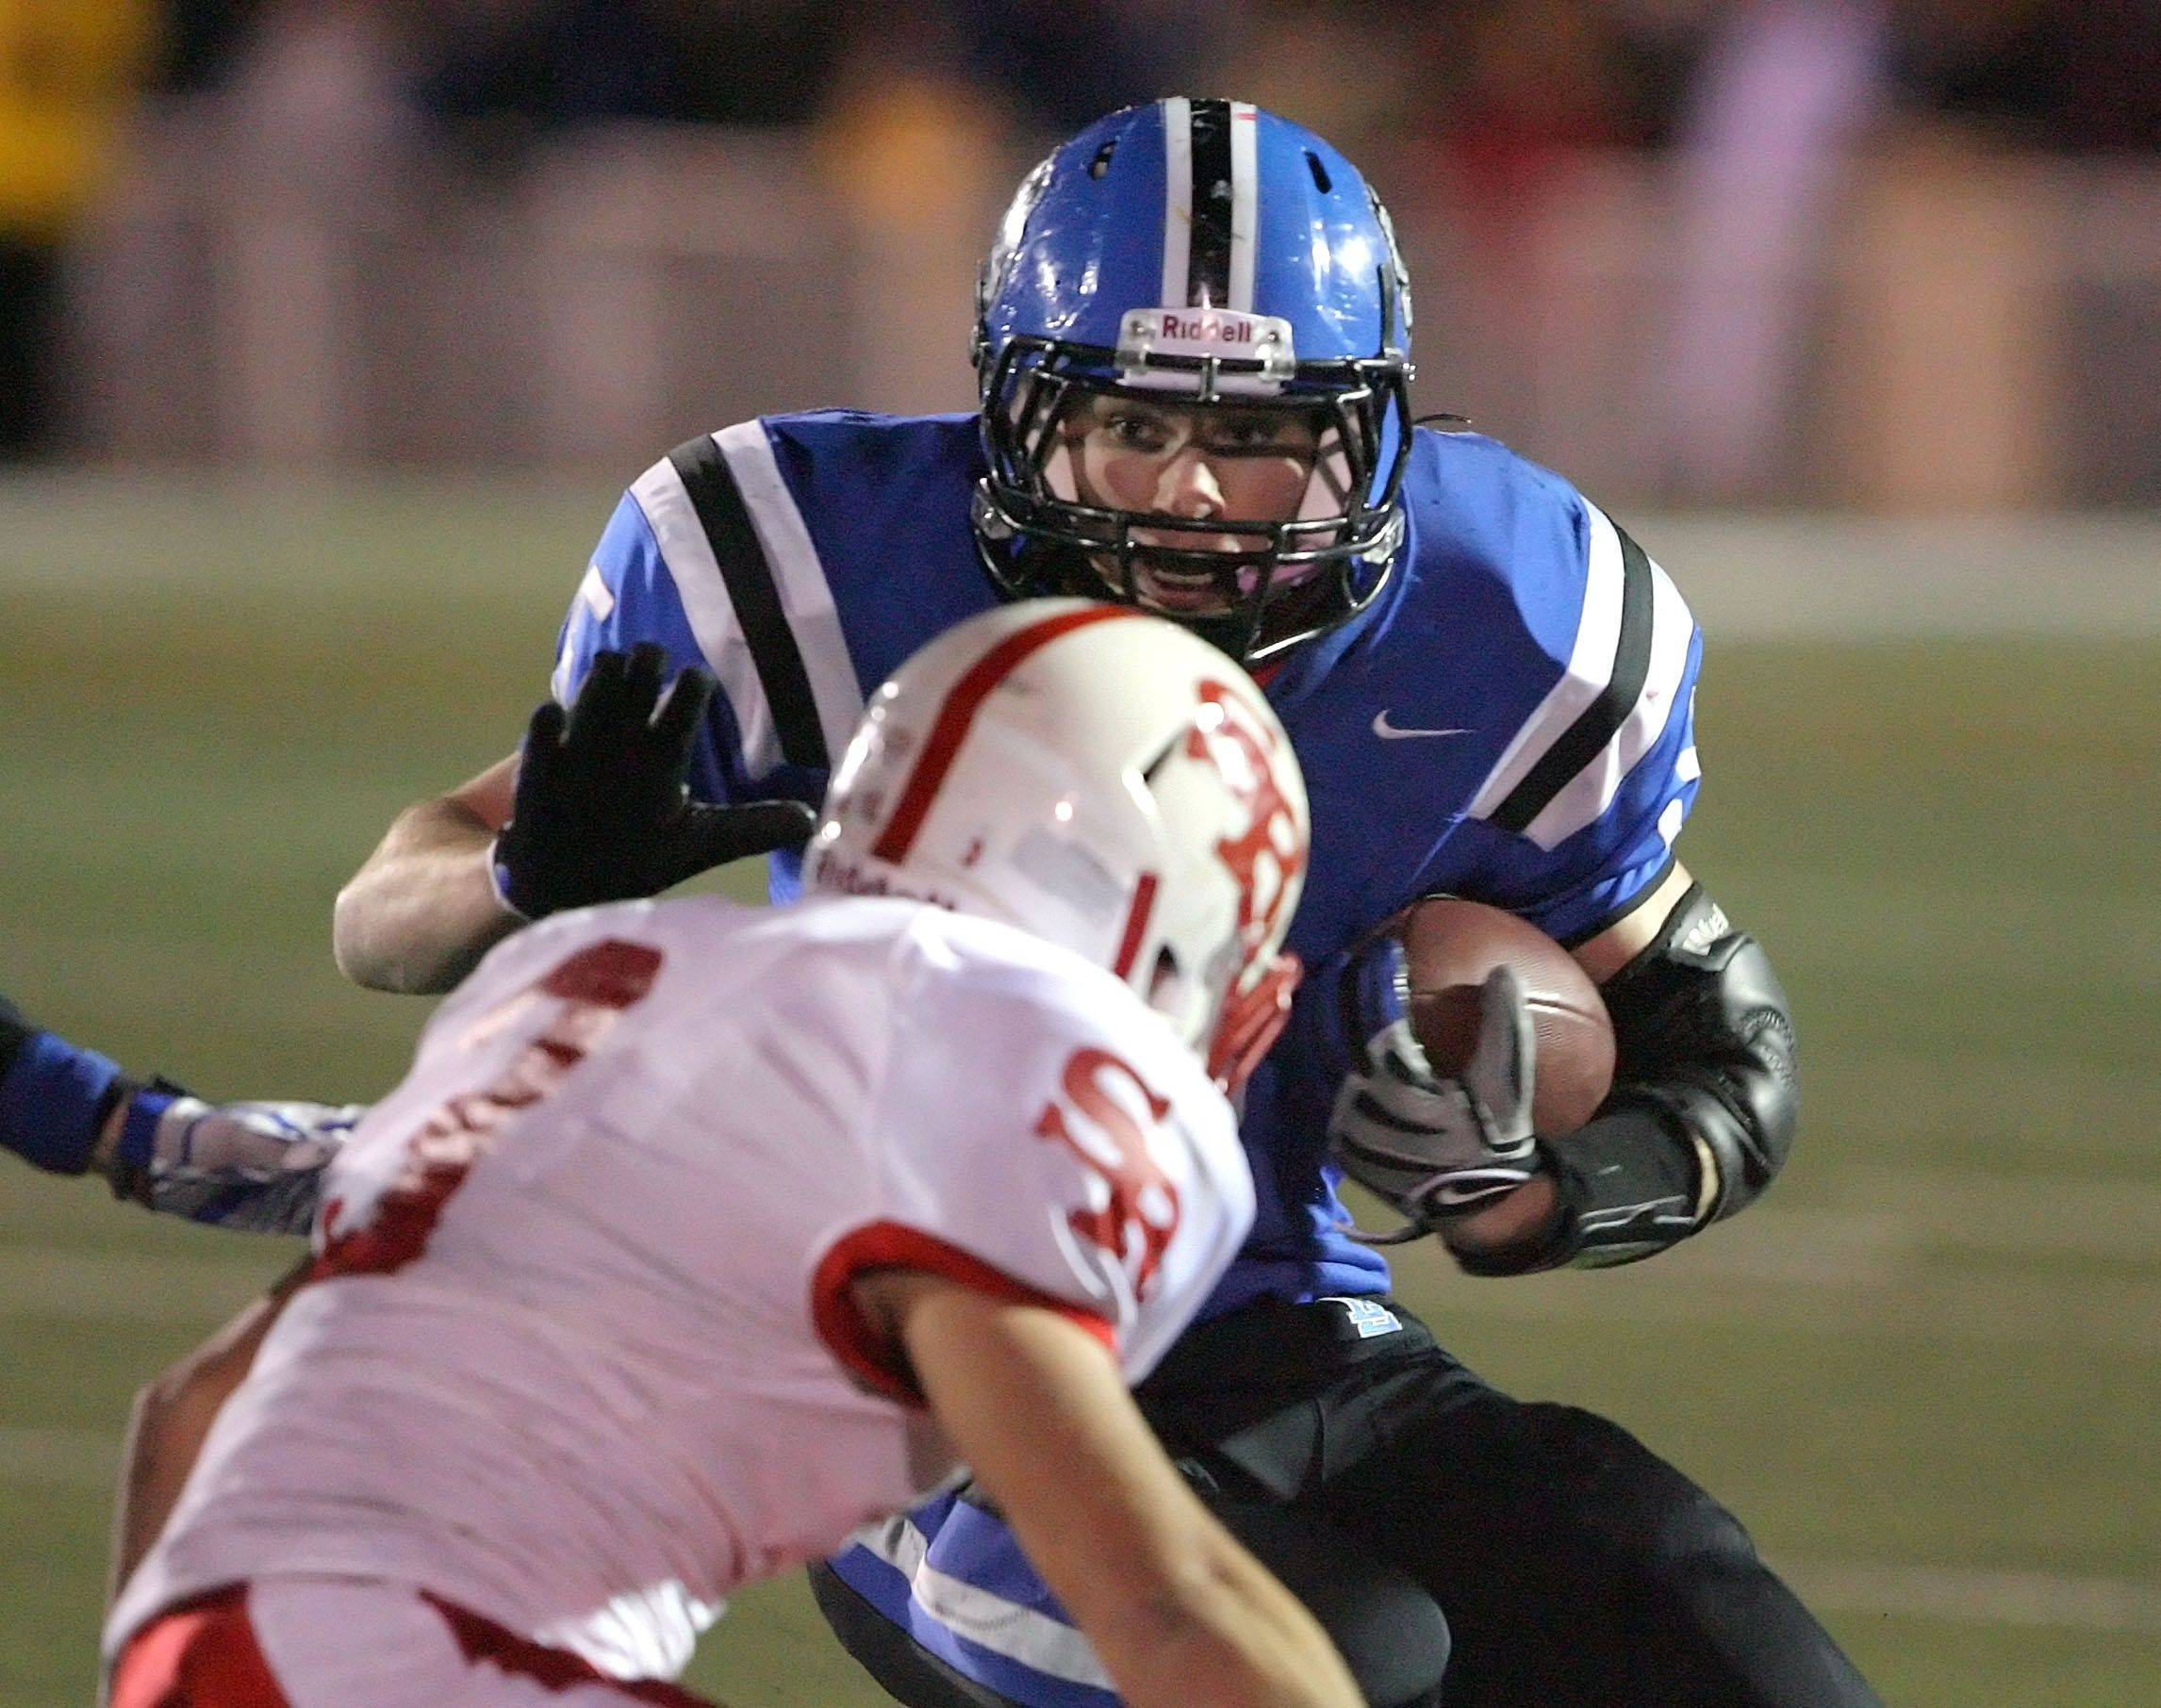 Lake Zurich's Jacob Brinlee runs towards St. Rita's Jimmy Johnson during the IHSA Class 7A football semi final game Saturday night at Lake Zurich High School.